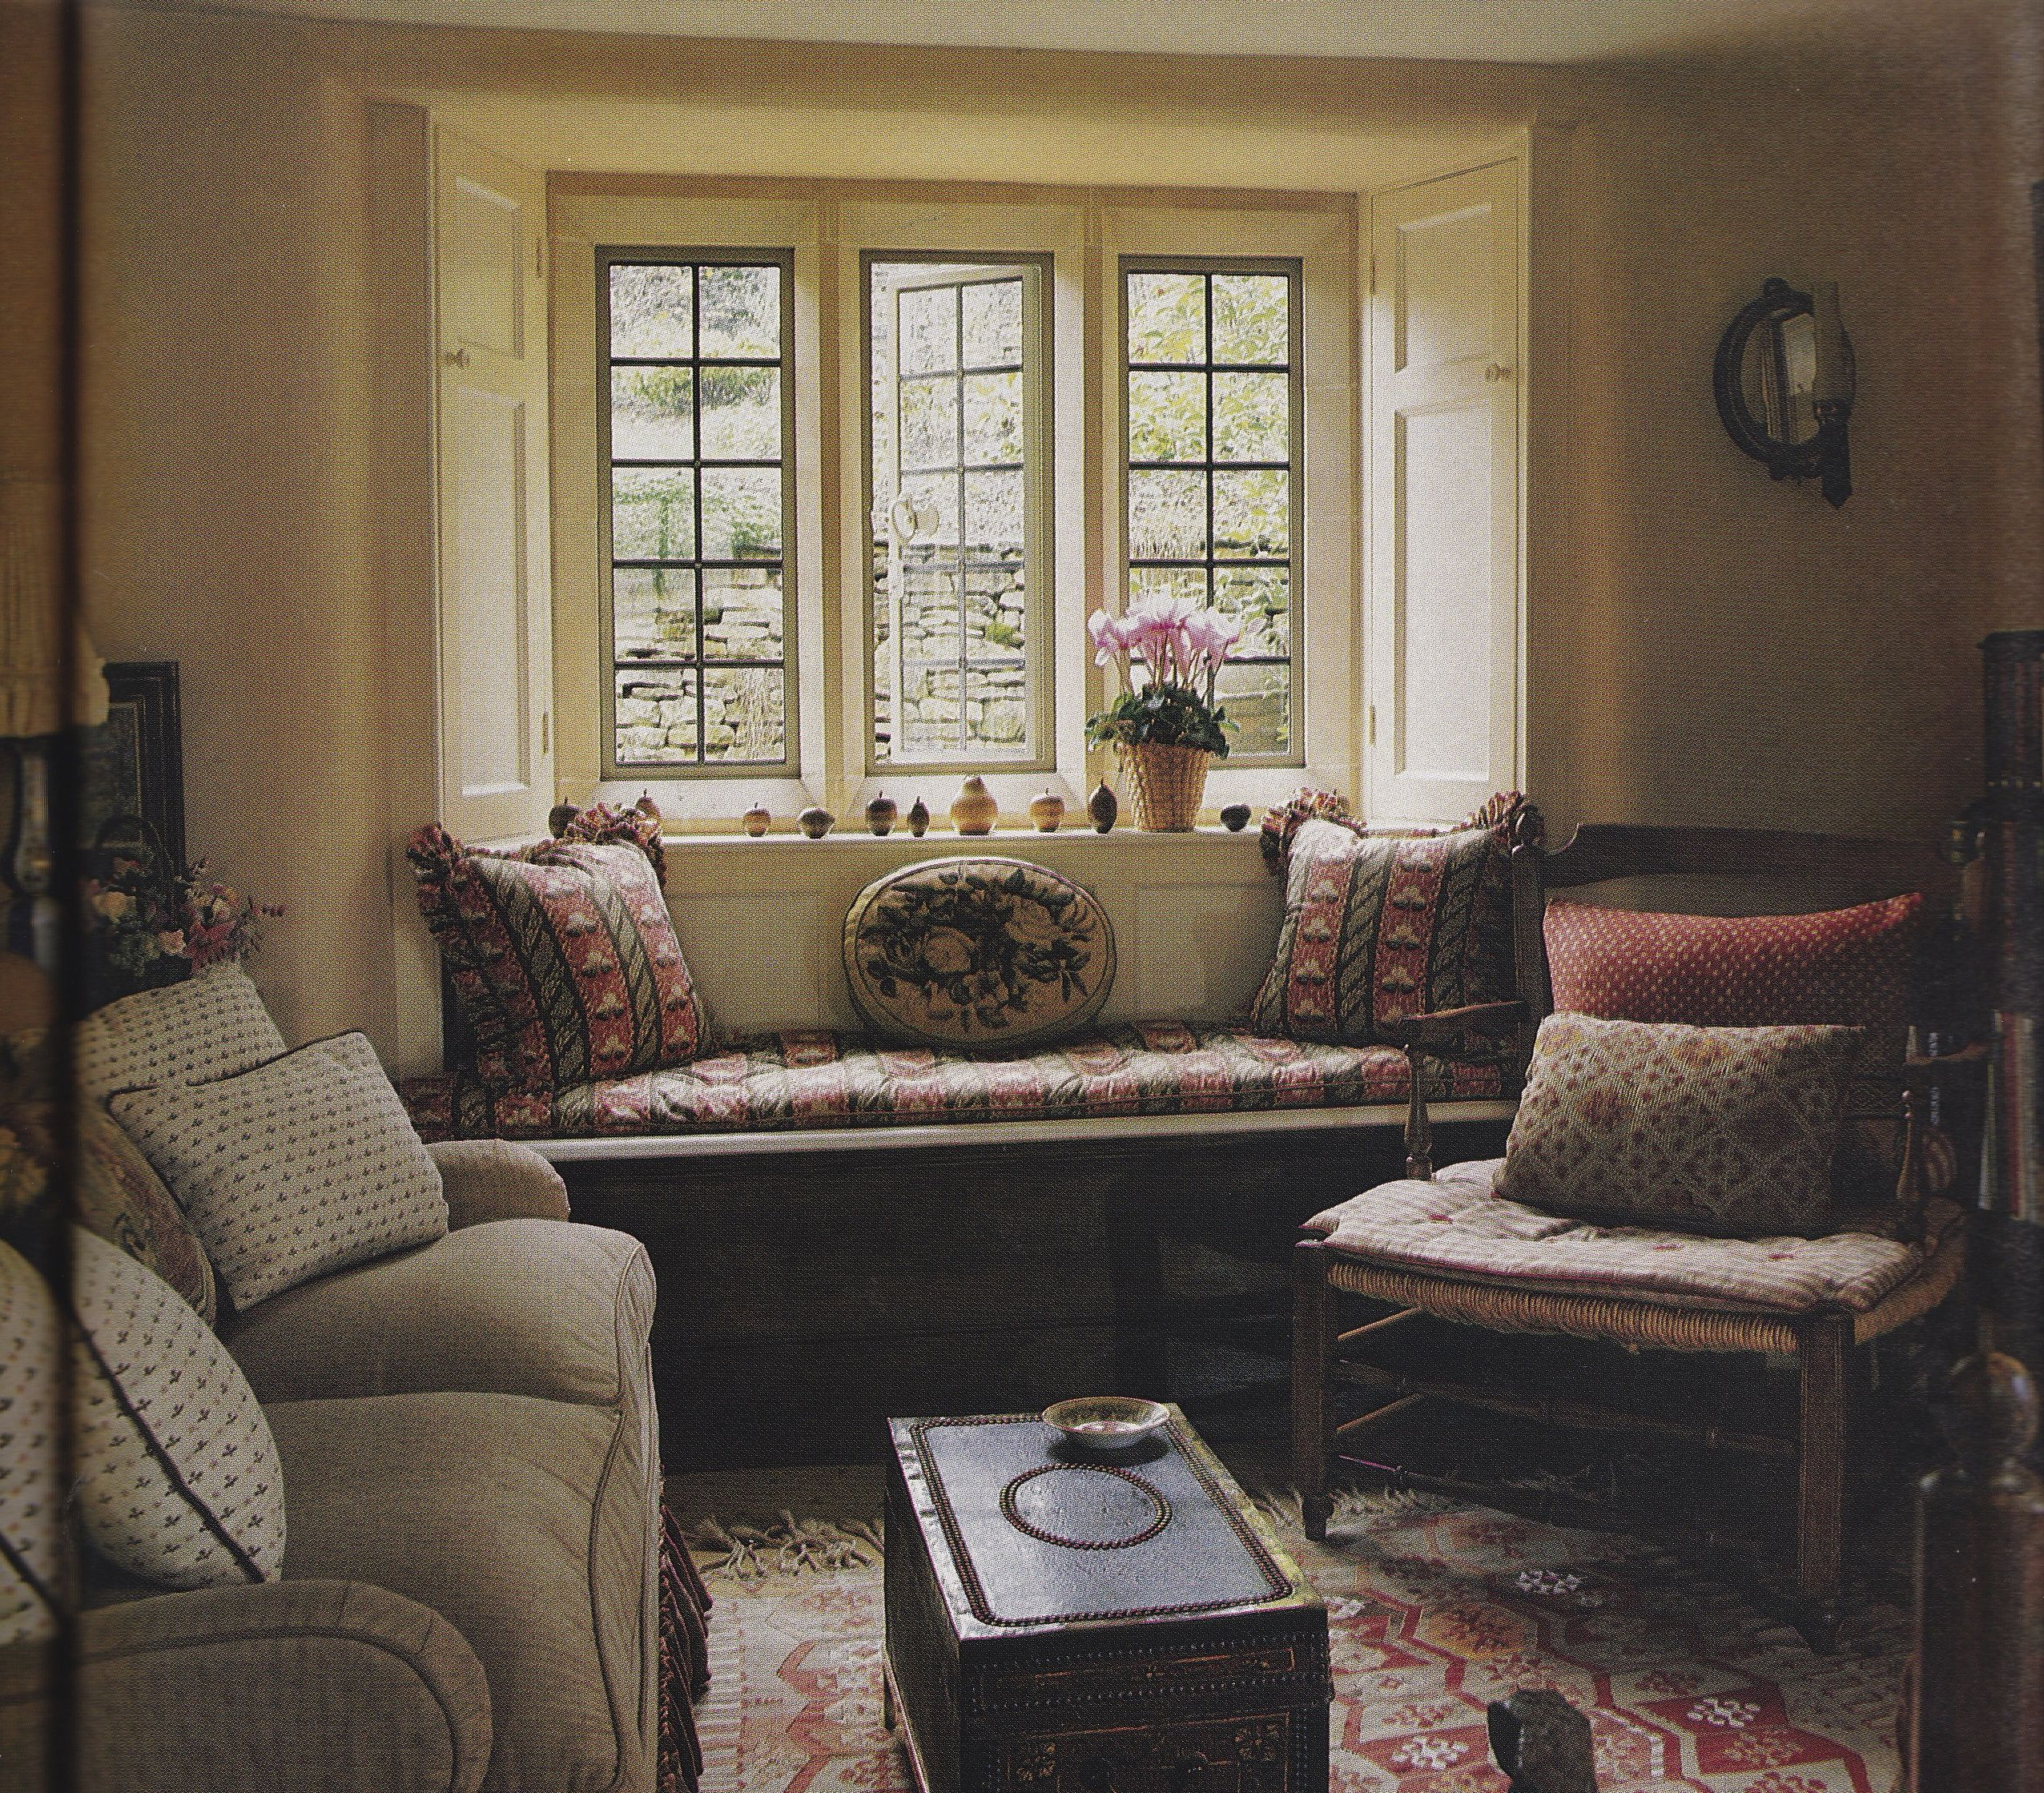 English sitting room.